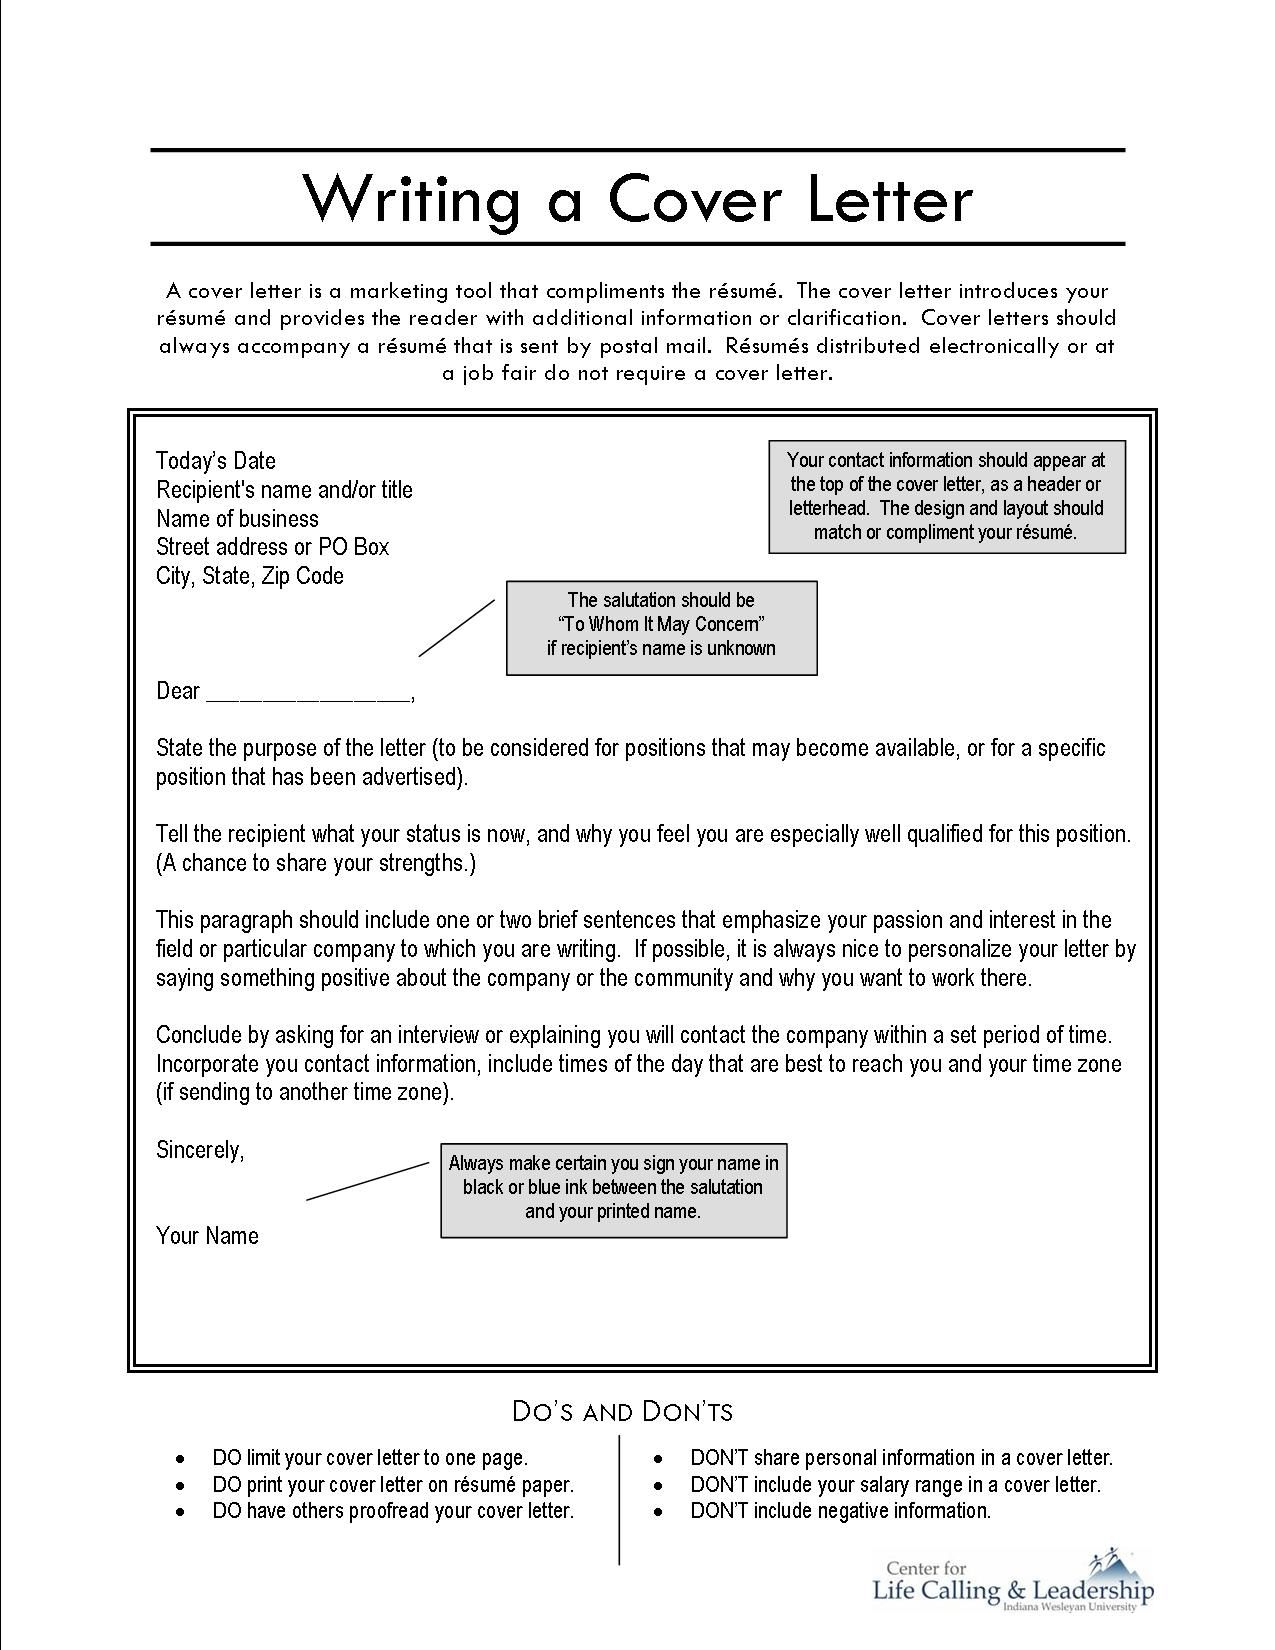 job offer writing a cover letter. Resume Example. Resume CV Cover Letter